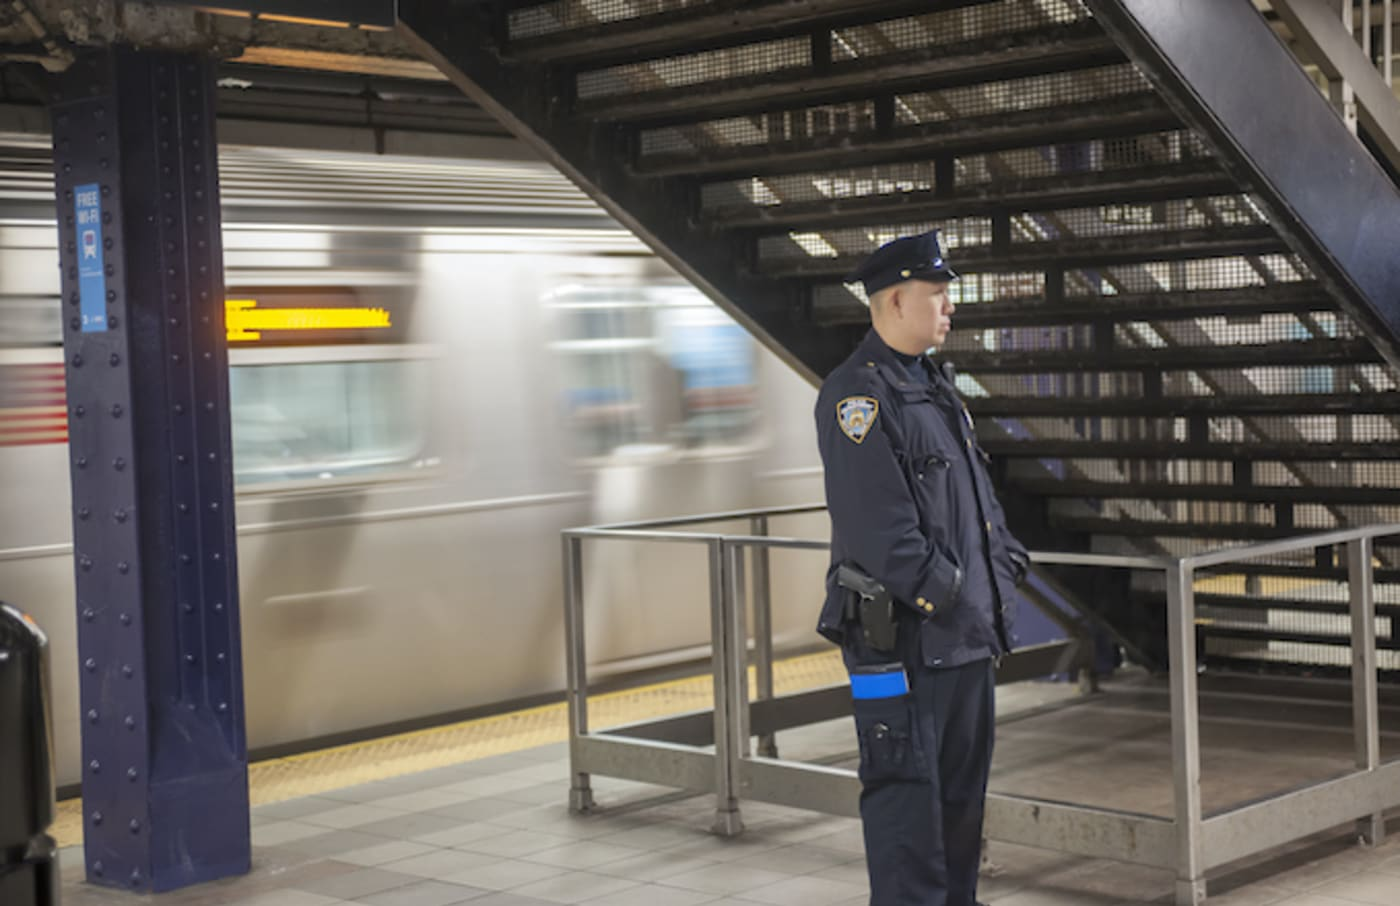 An NYPD officer is seen in the Times Square station in New York.